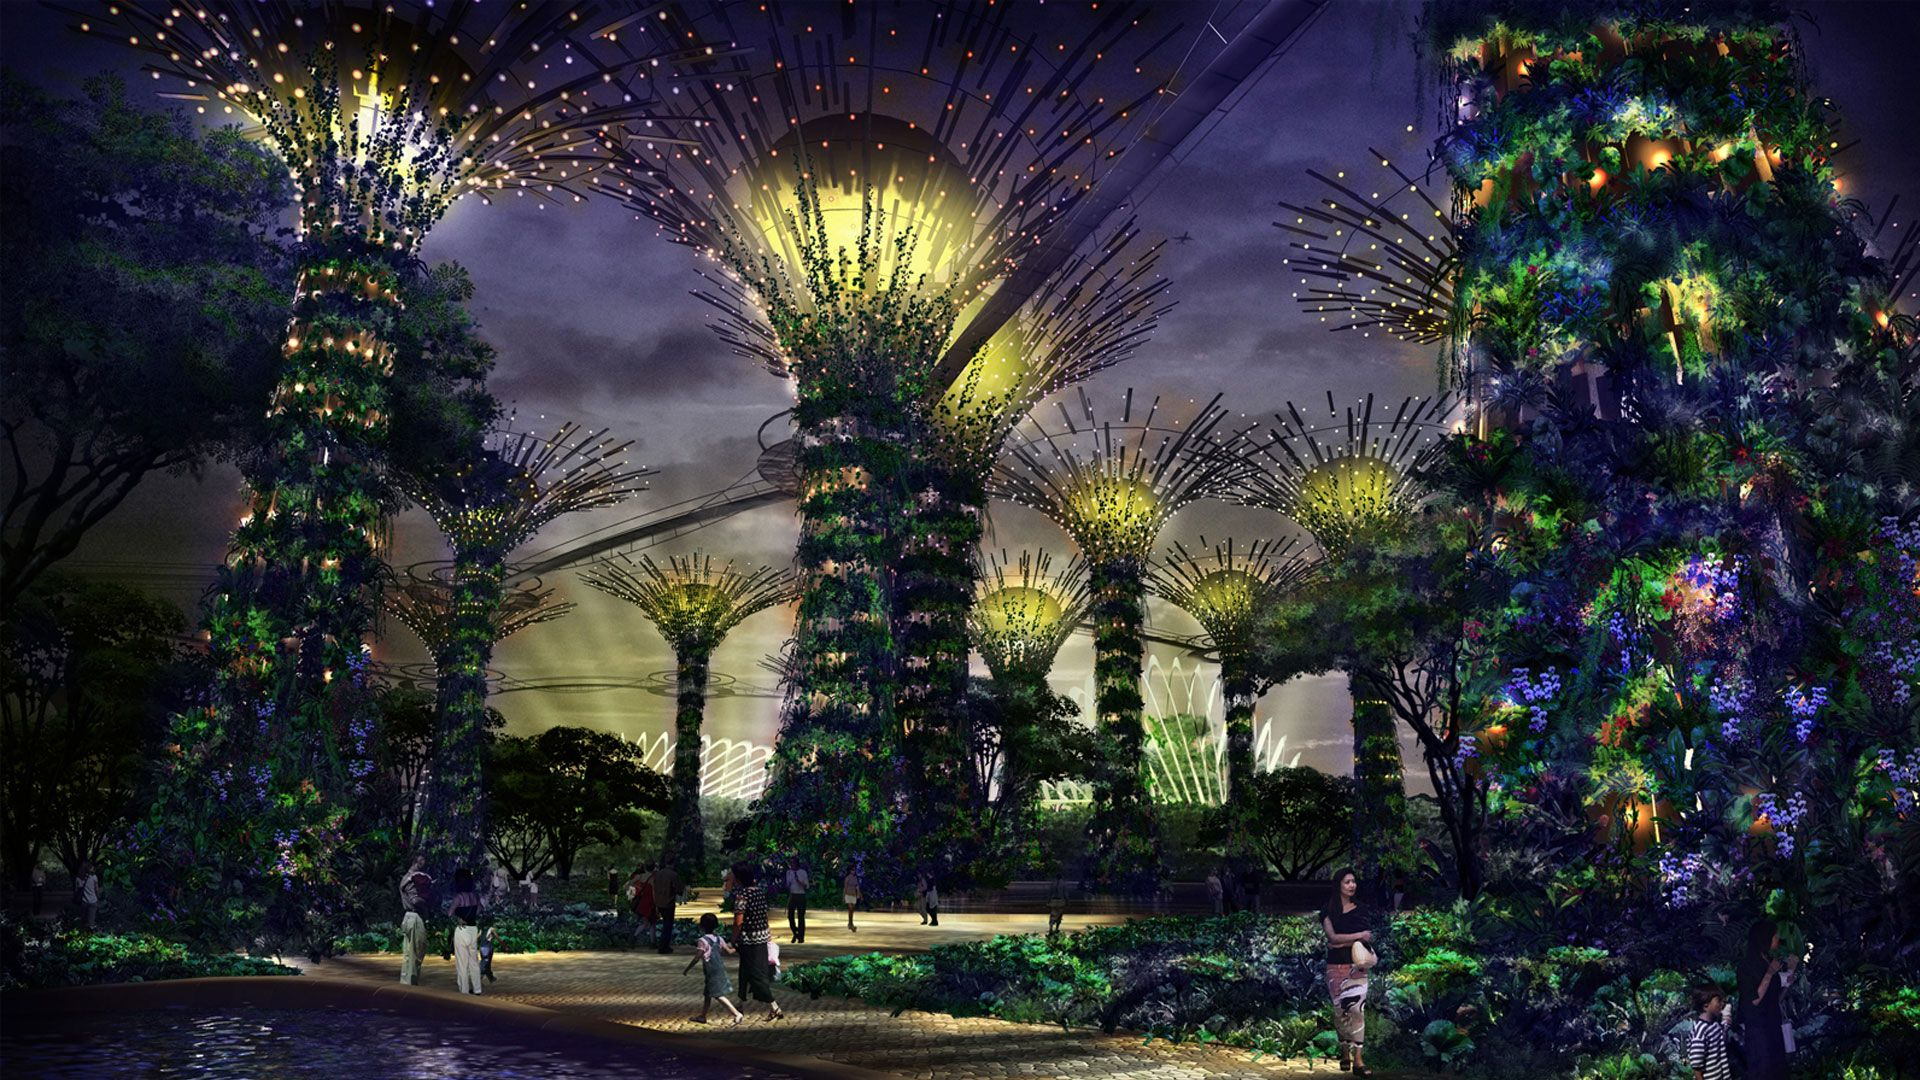 Garden By The Bay At Night panorama beautiful gardensthe bay, singapore | singapore